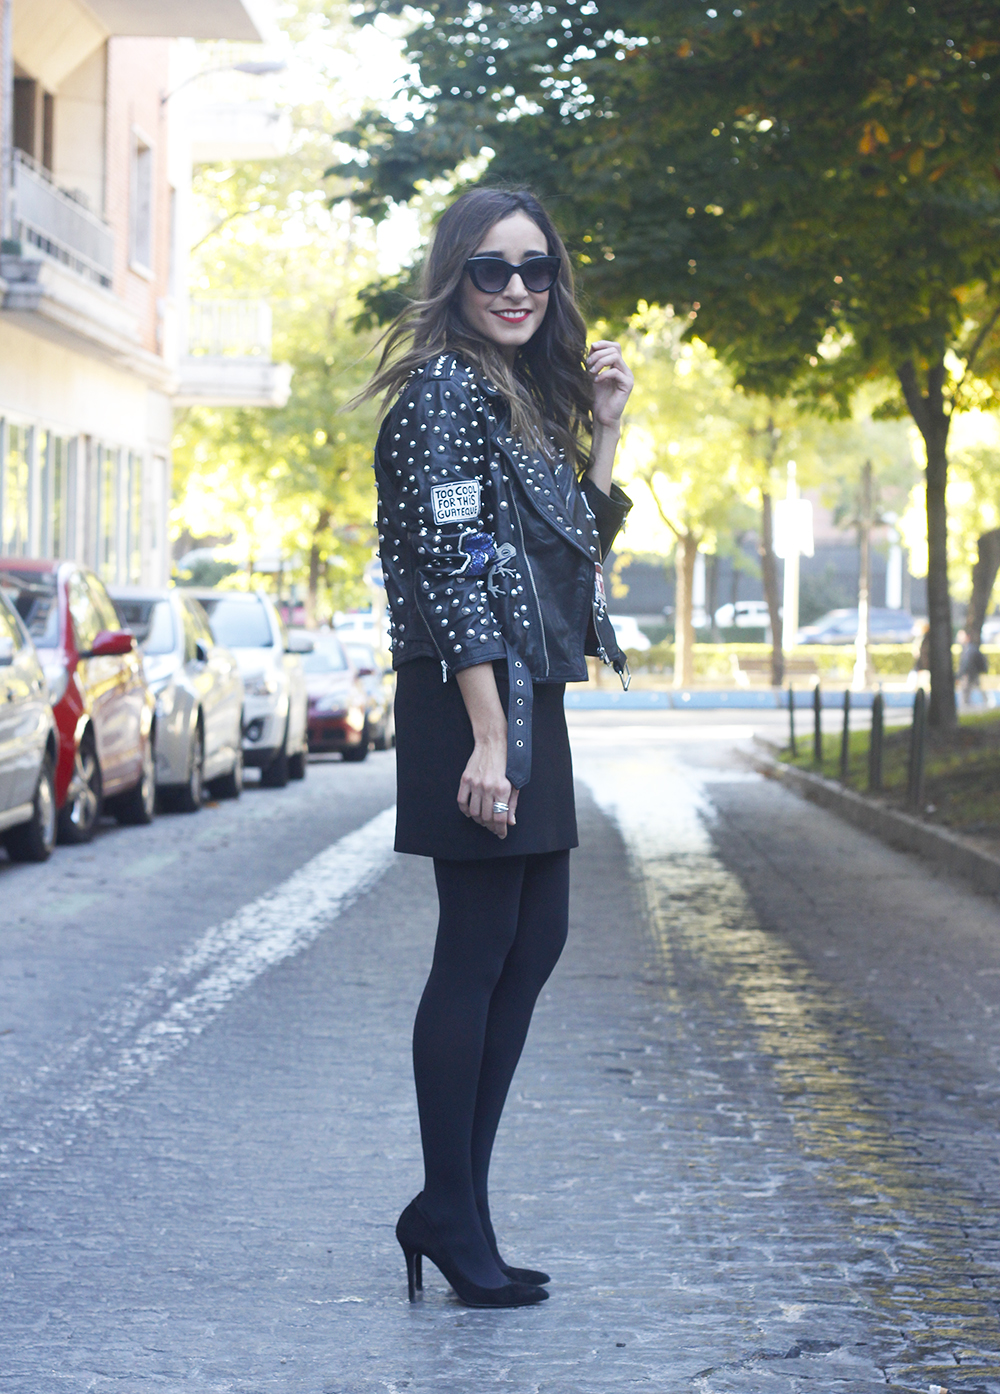 Leather jacket with studs and patches black skirt heels style fashion outfit05